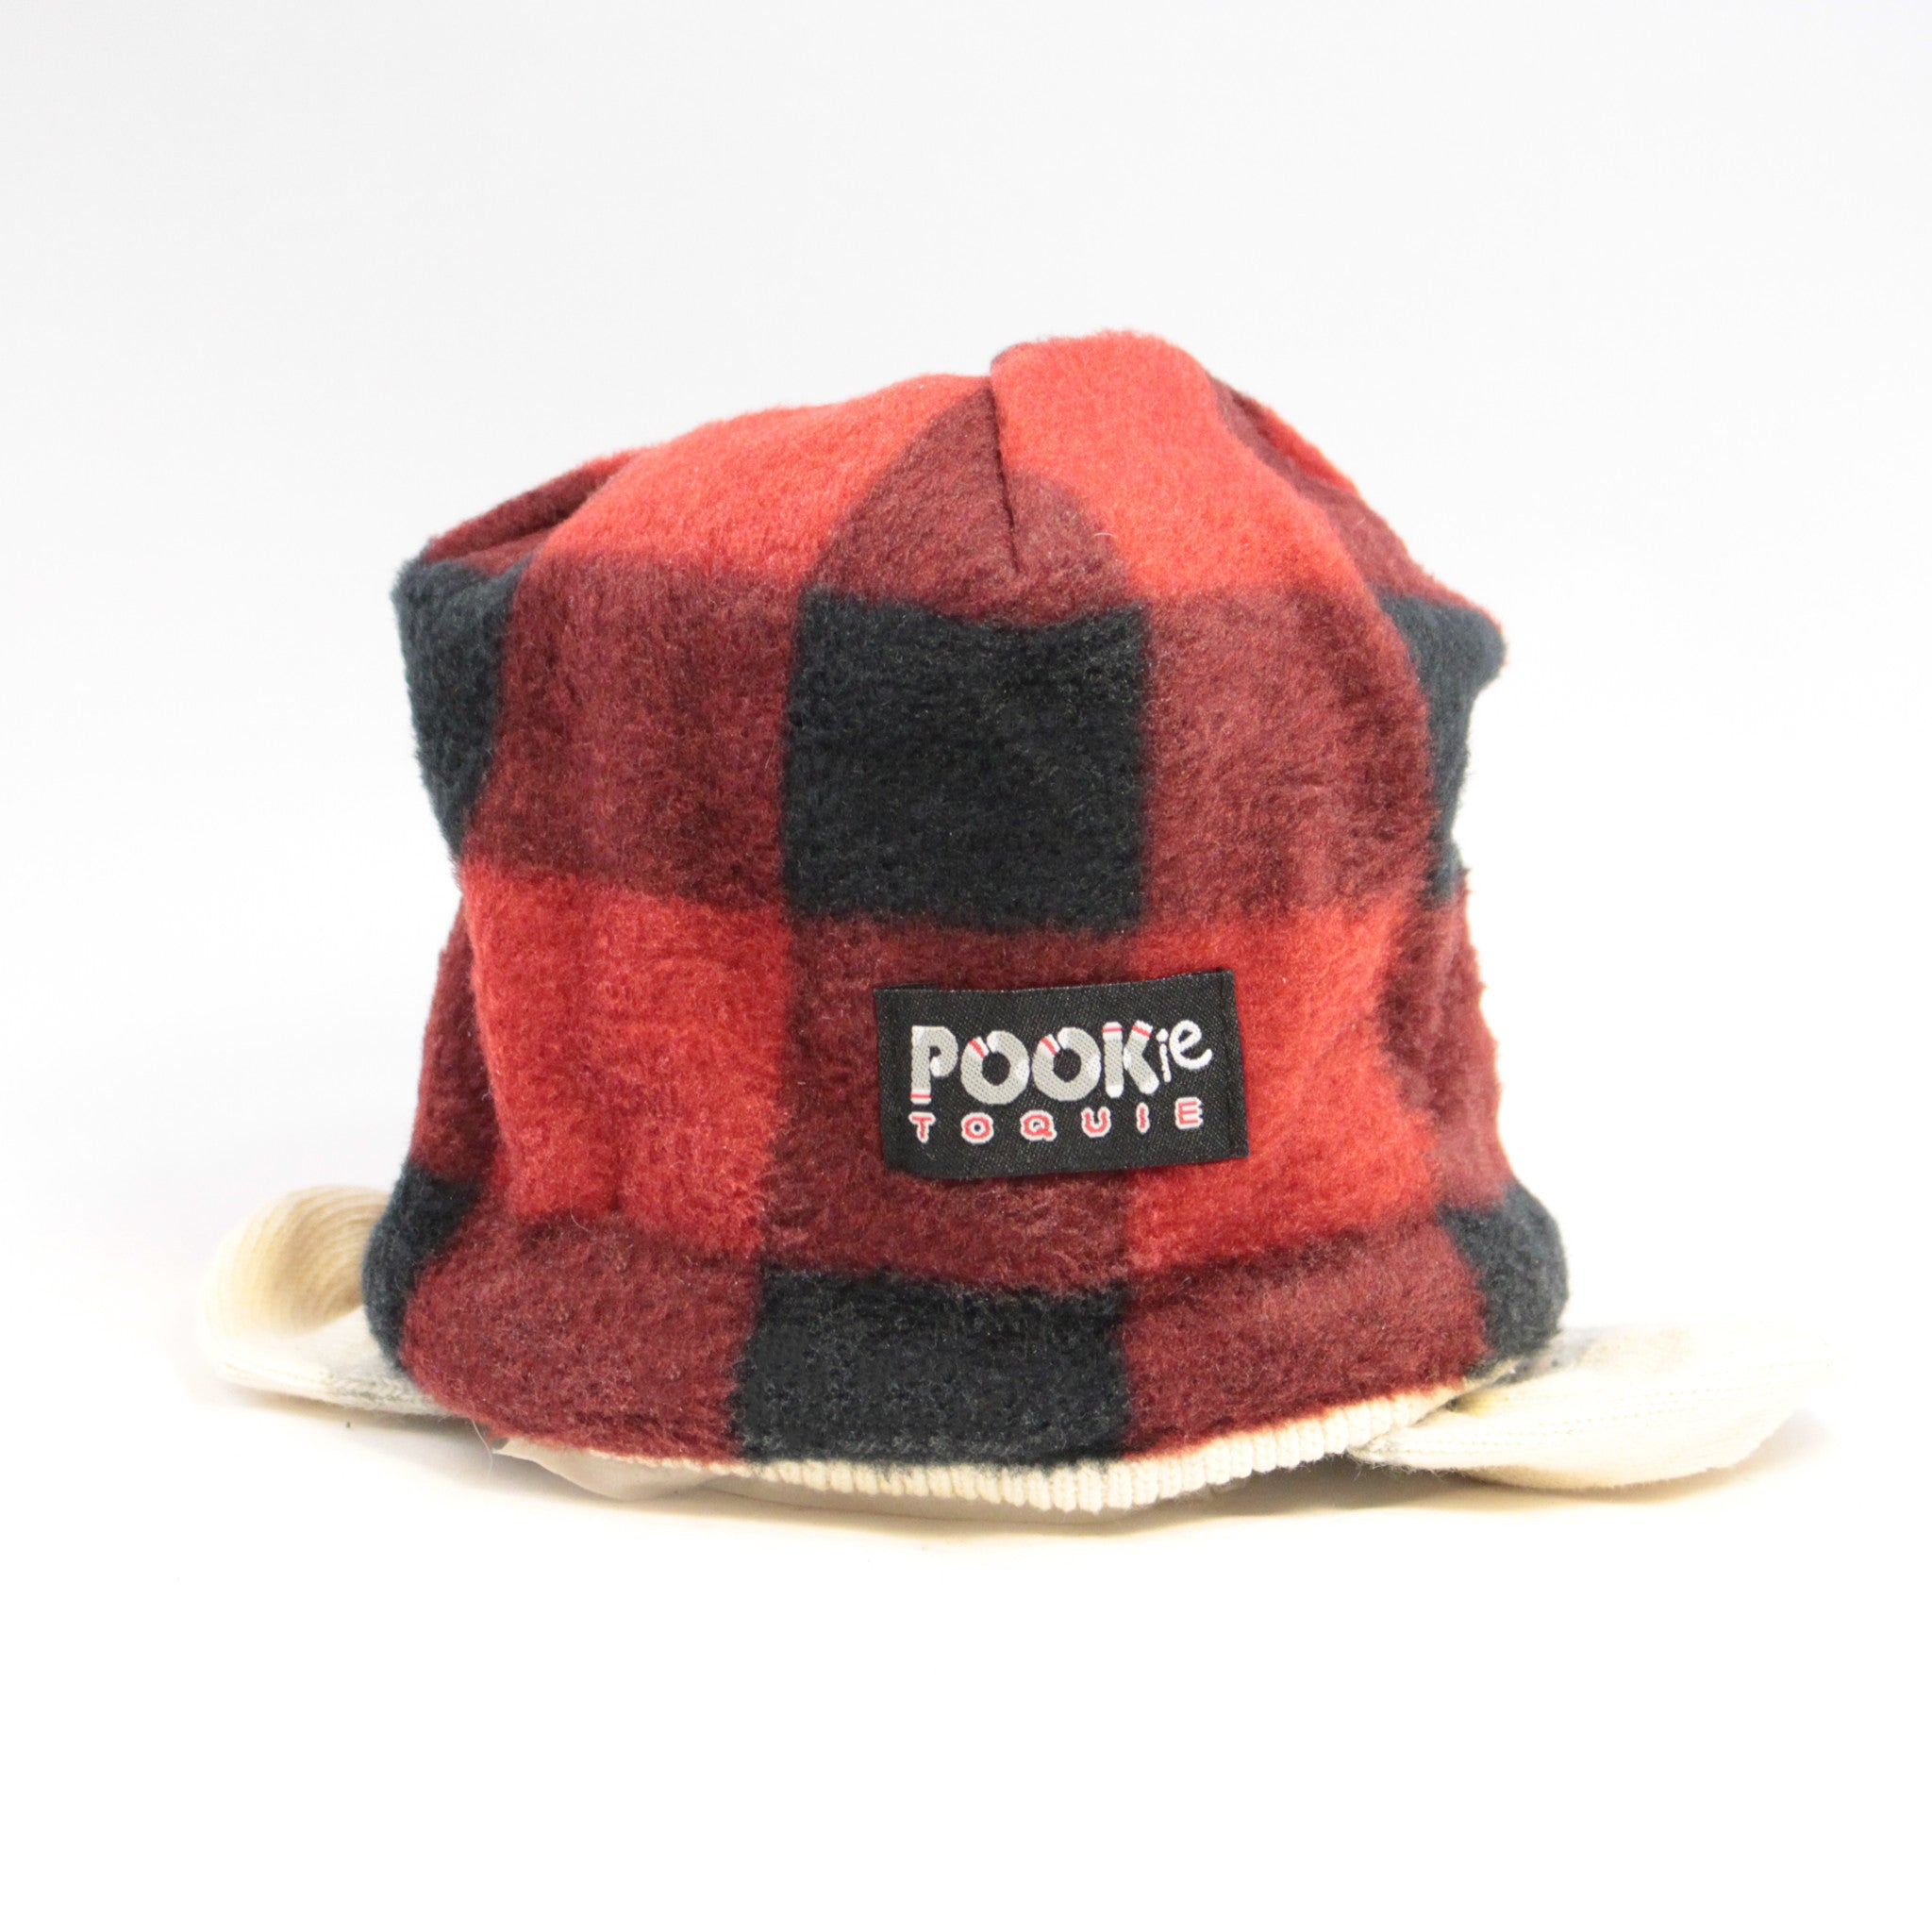 Pookie Toquie Baby Hat - Red